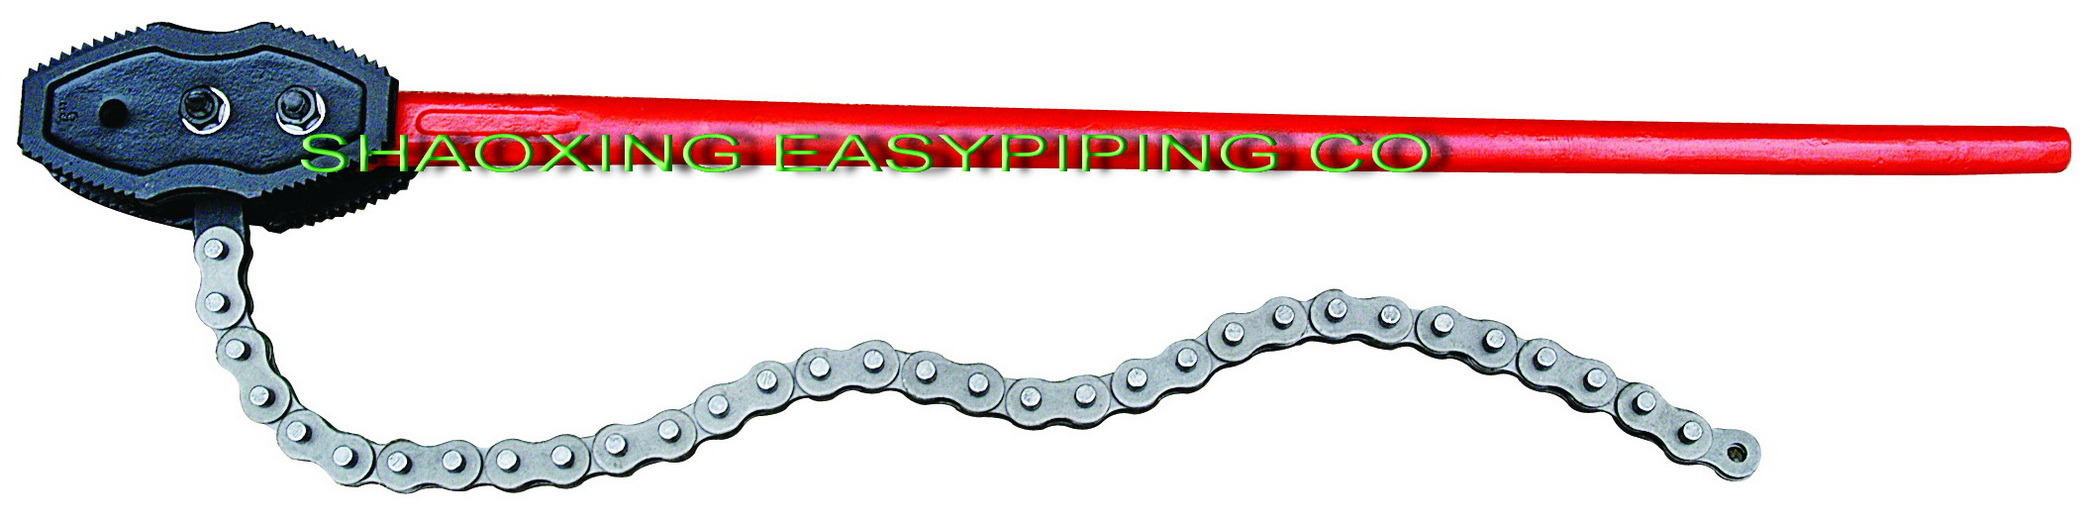 China Chain Tong China Hd Pipe Wrench Heavy Duty Pipe